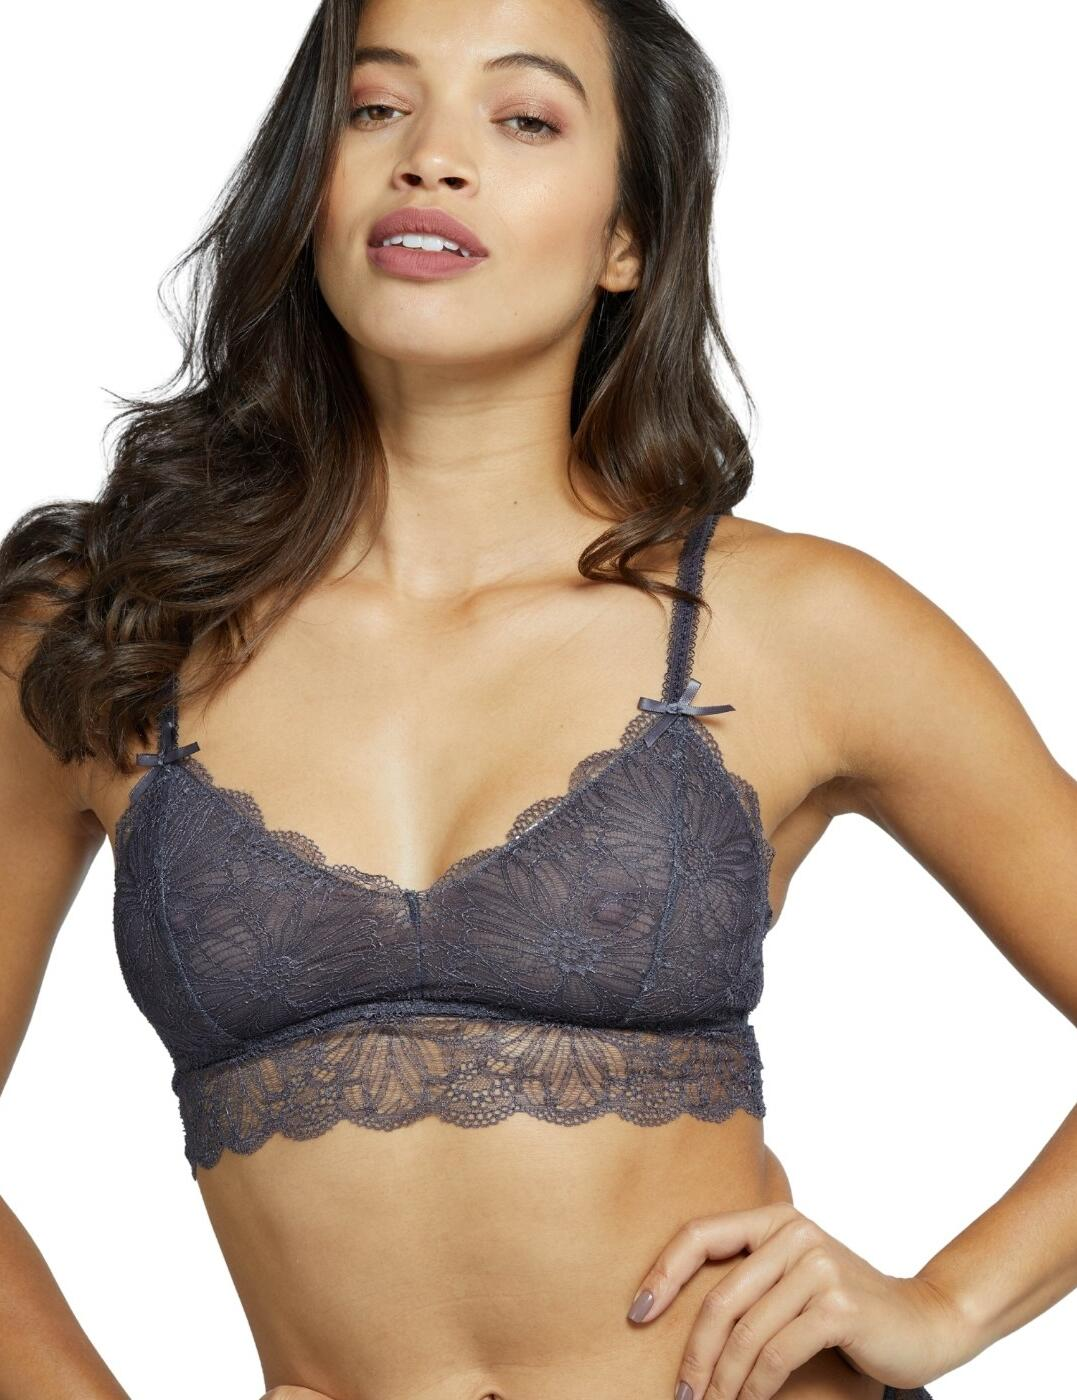 WWL631SG Playful Promises Wolf & Whistle Ariana Lace Bralette - WWL631SG Steel Grey